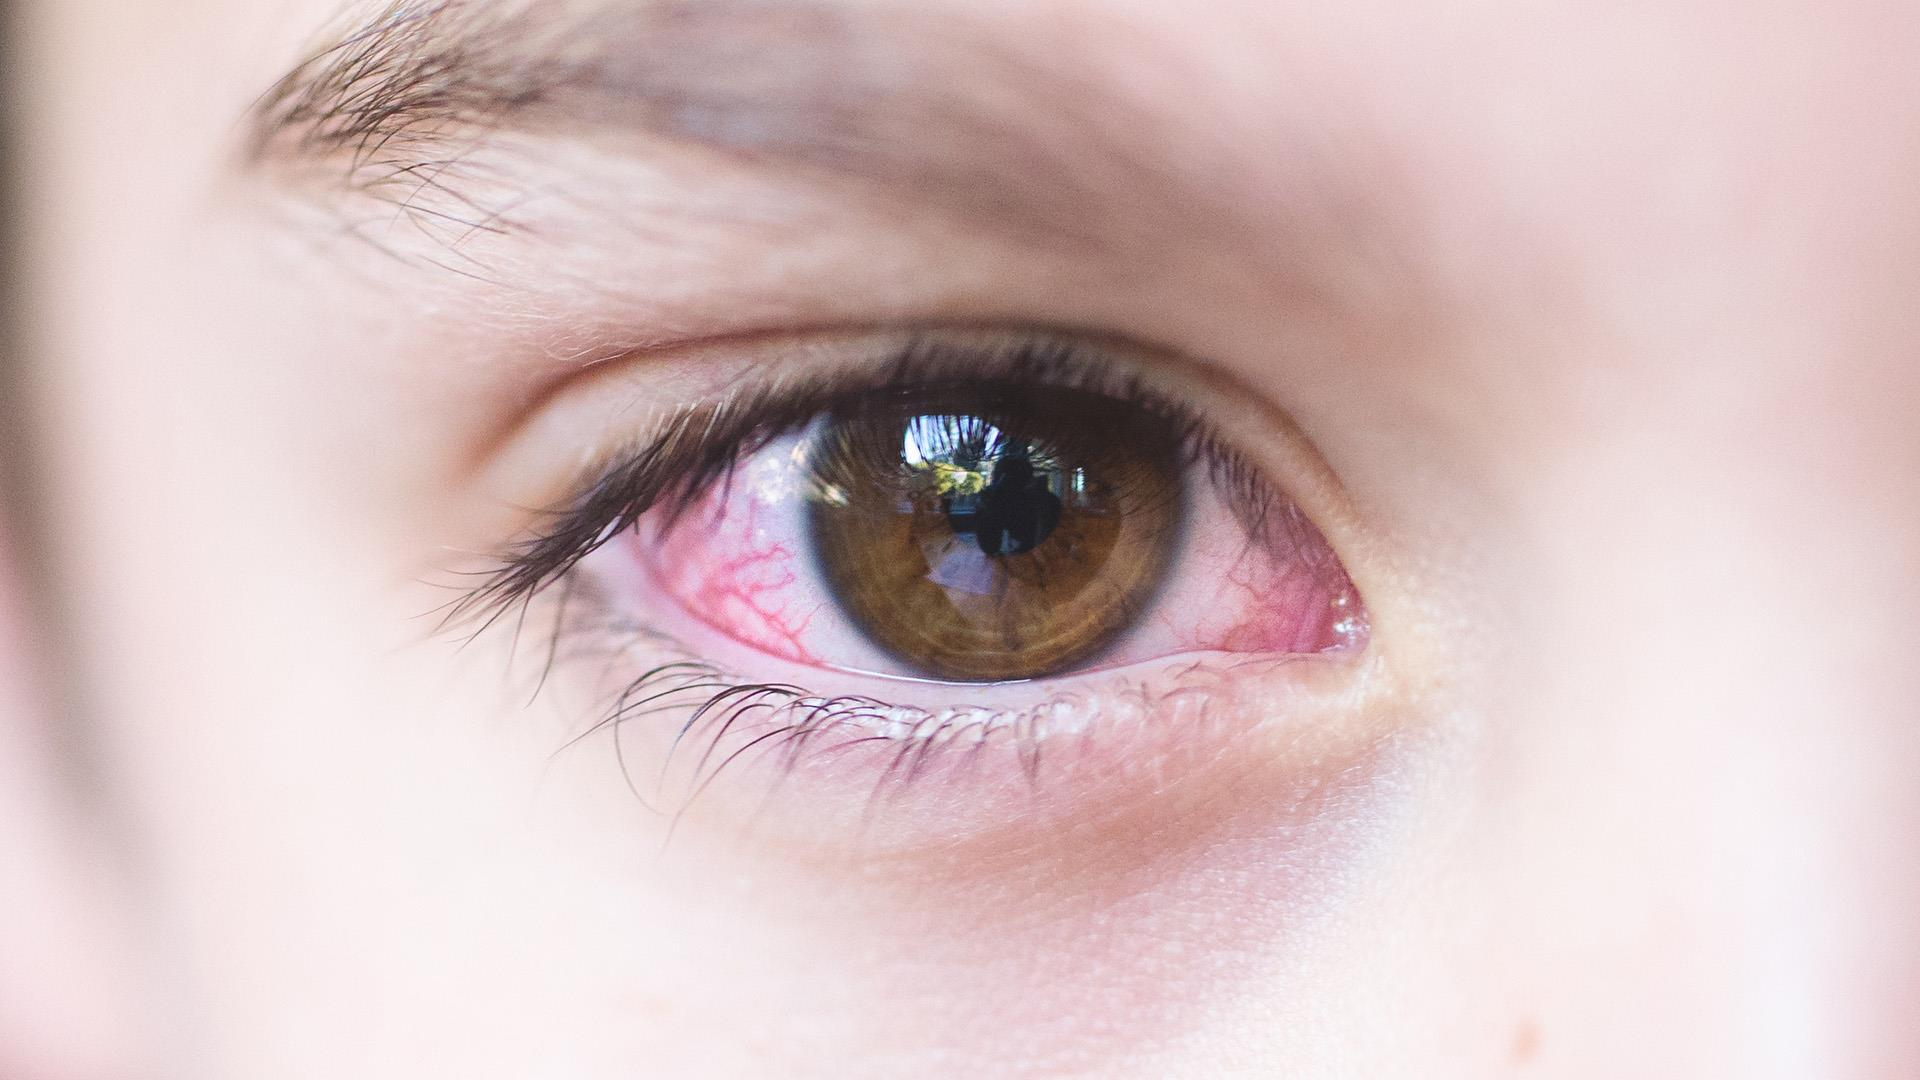 pink eye Pink eye (conjunctivitis) is uncomfortable and contagious, but — like the common cold — rarely requires medication or staying home.